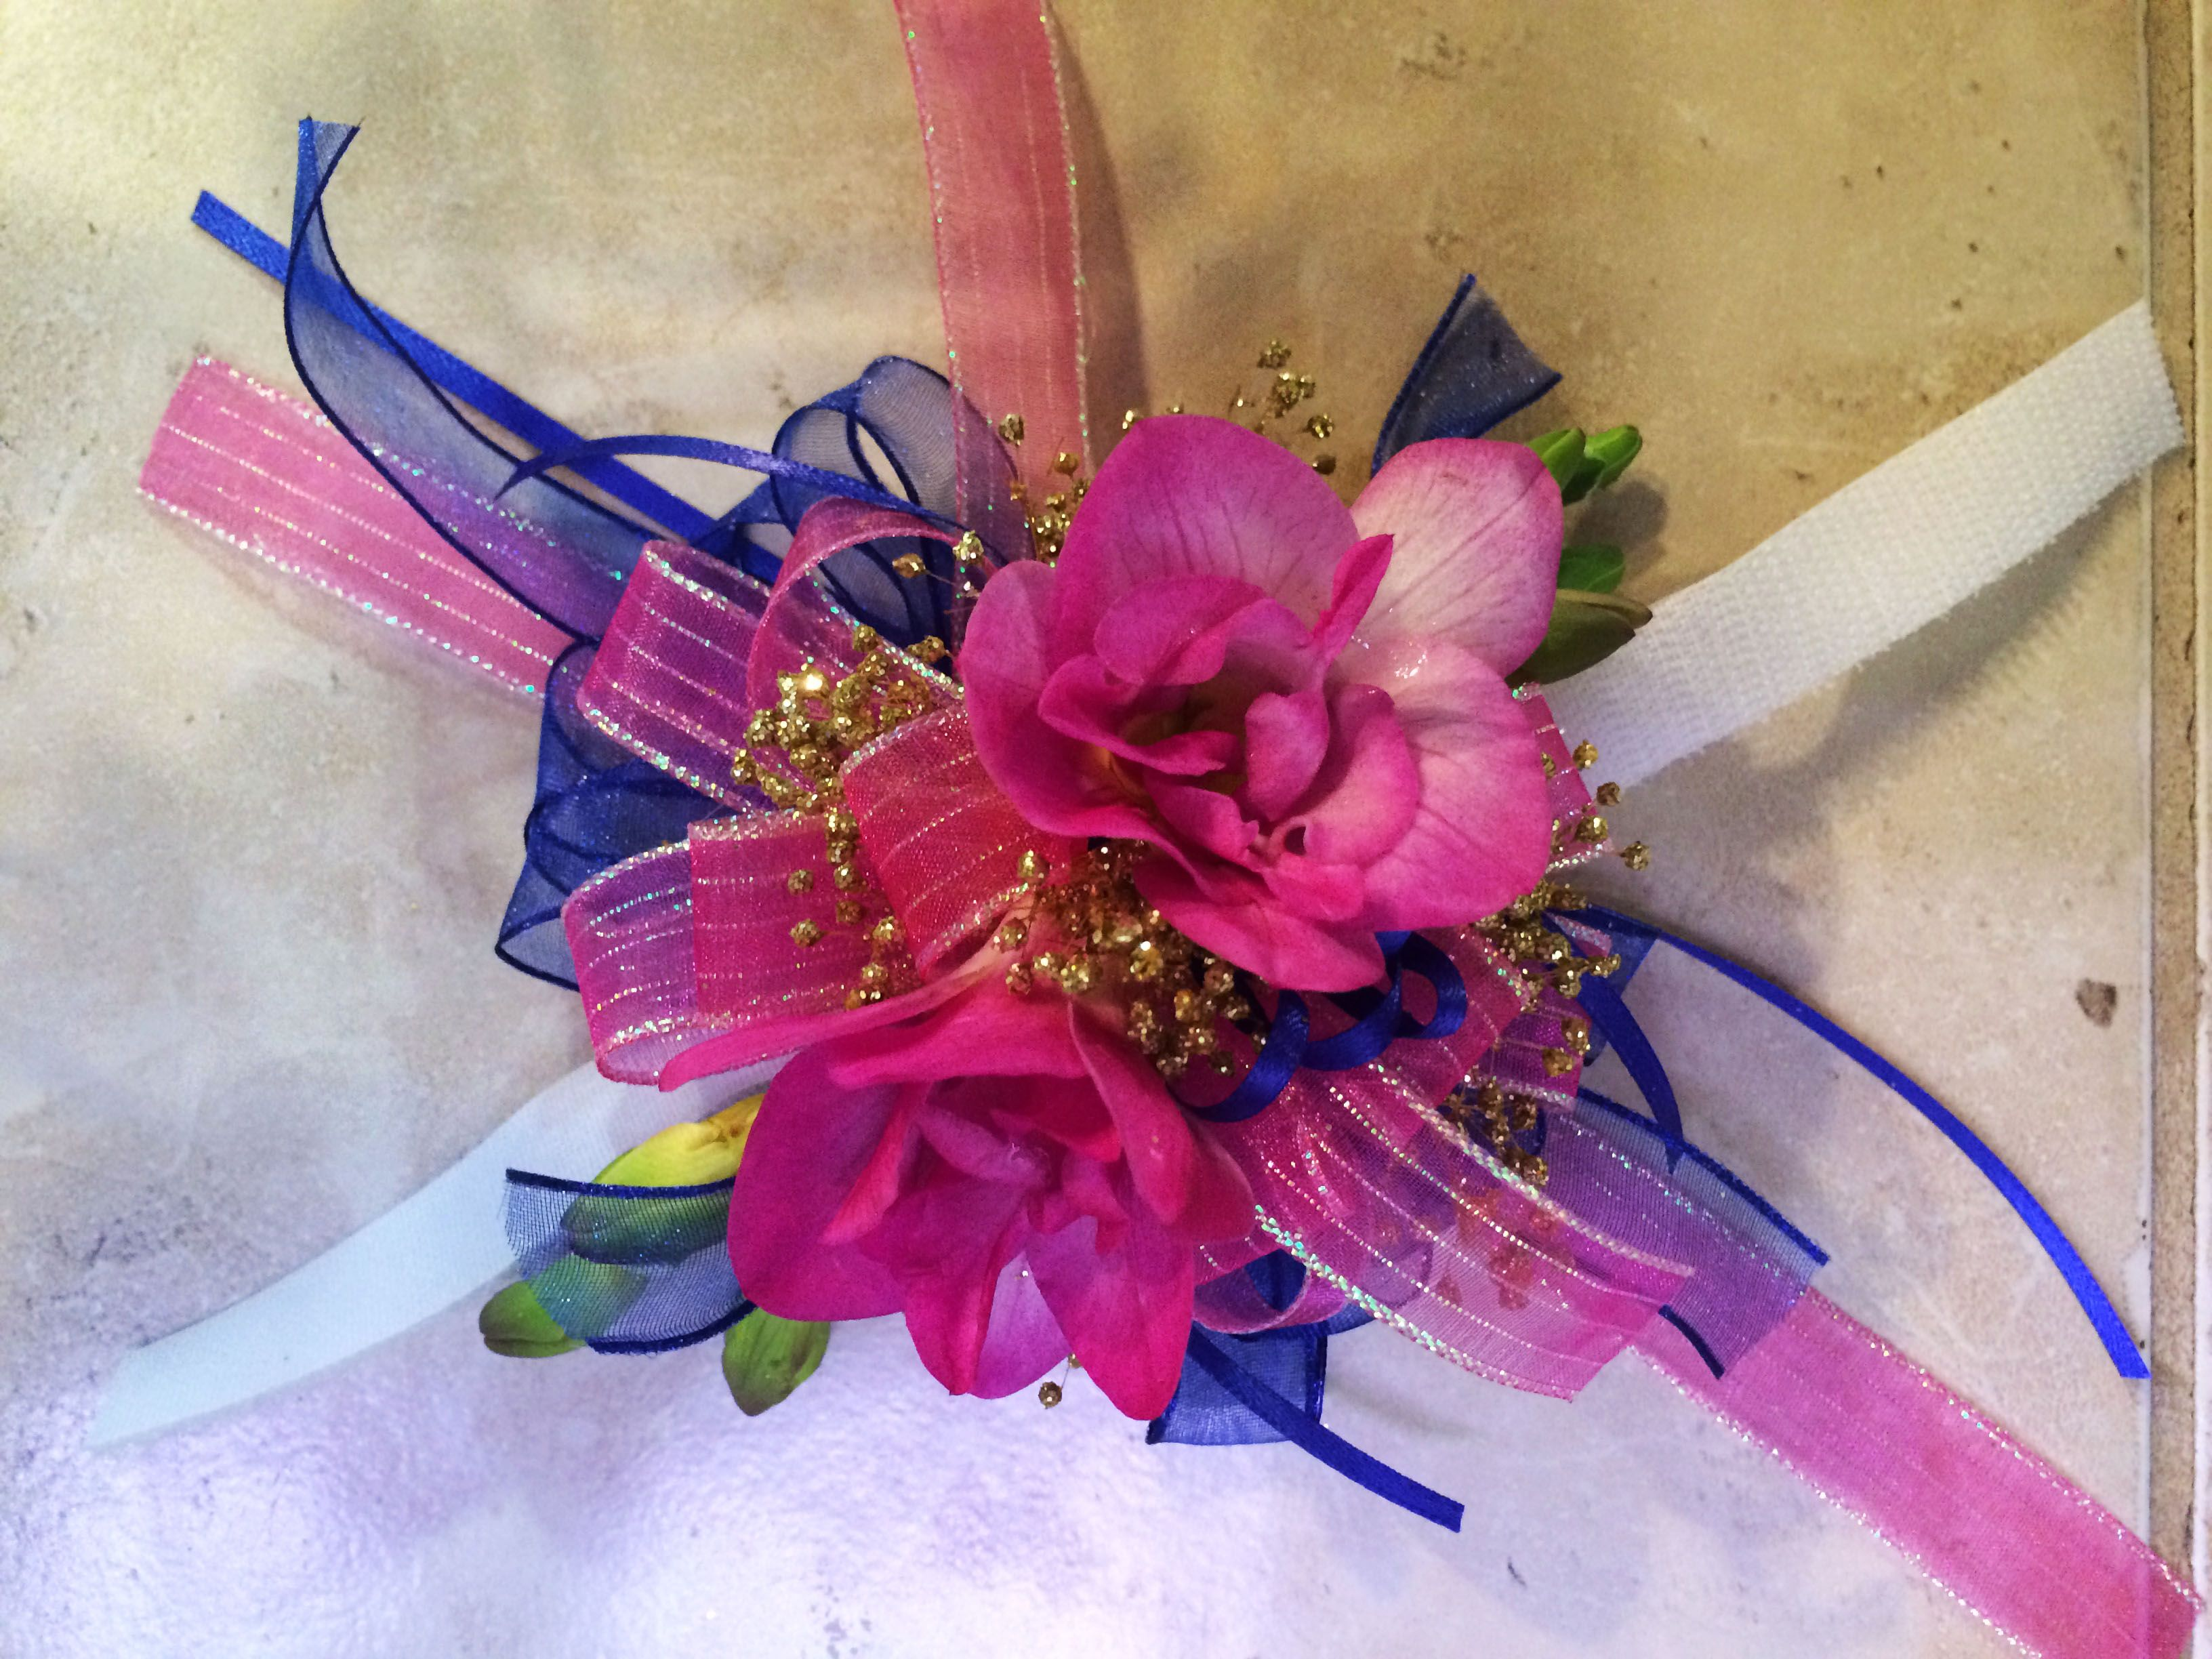 Corsage Magenta Fuchsia Wrist Corsage Hair Clip Bracelet Corsage Prom Corsage Homecoming Bracelet Corsage Flower Corsage Magenta Corsage